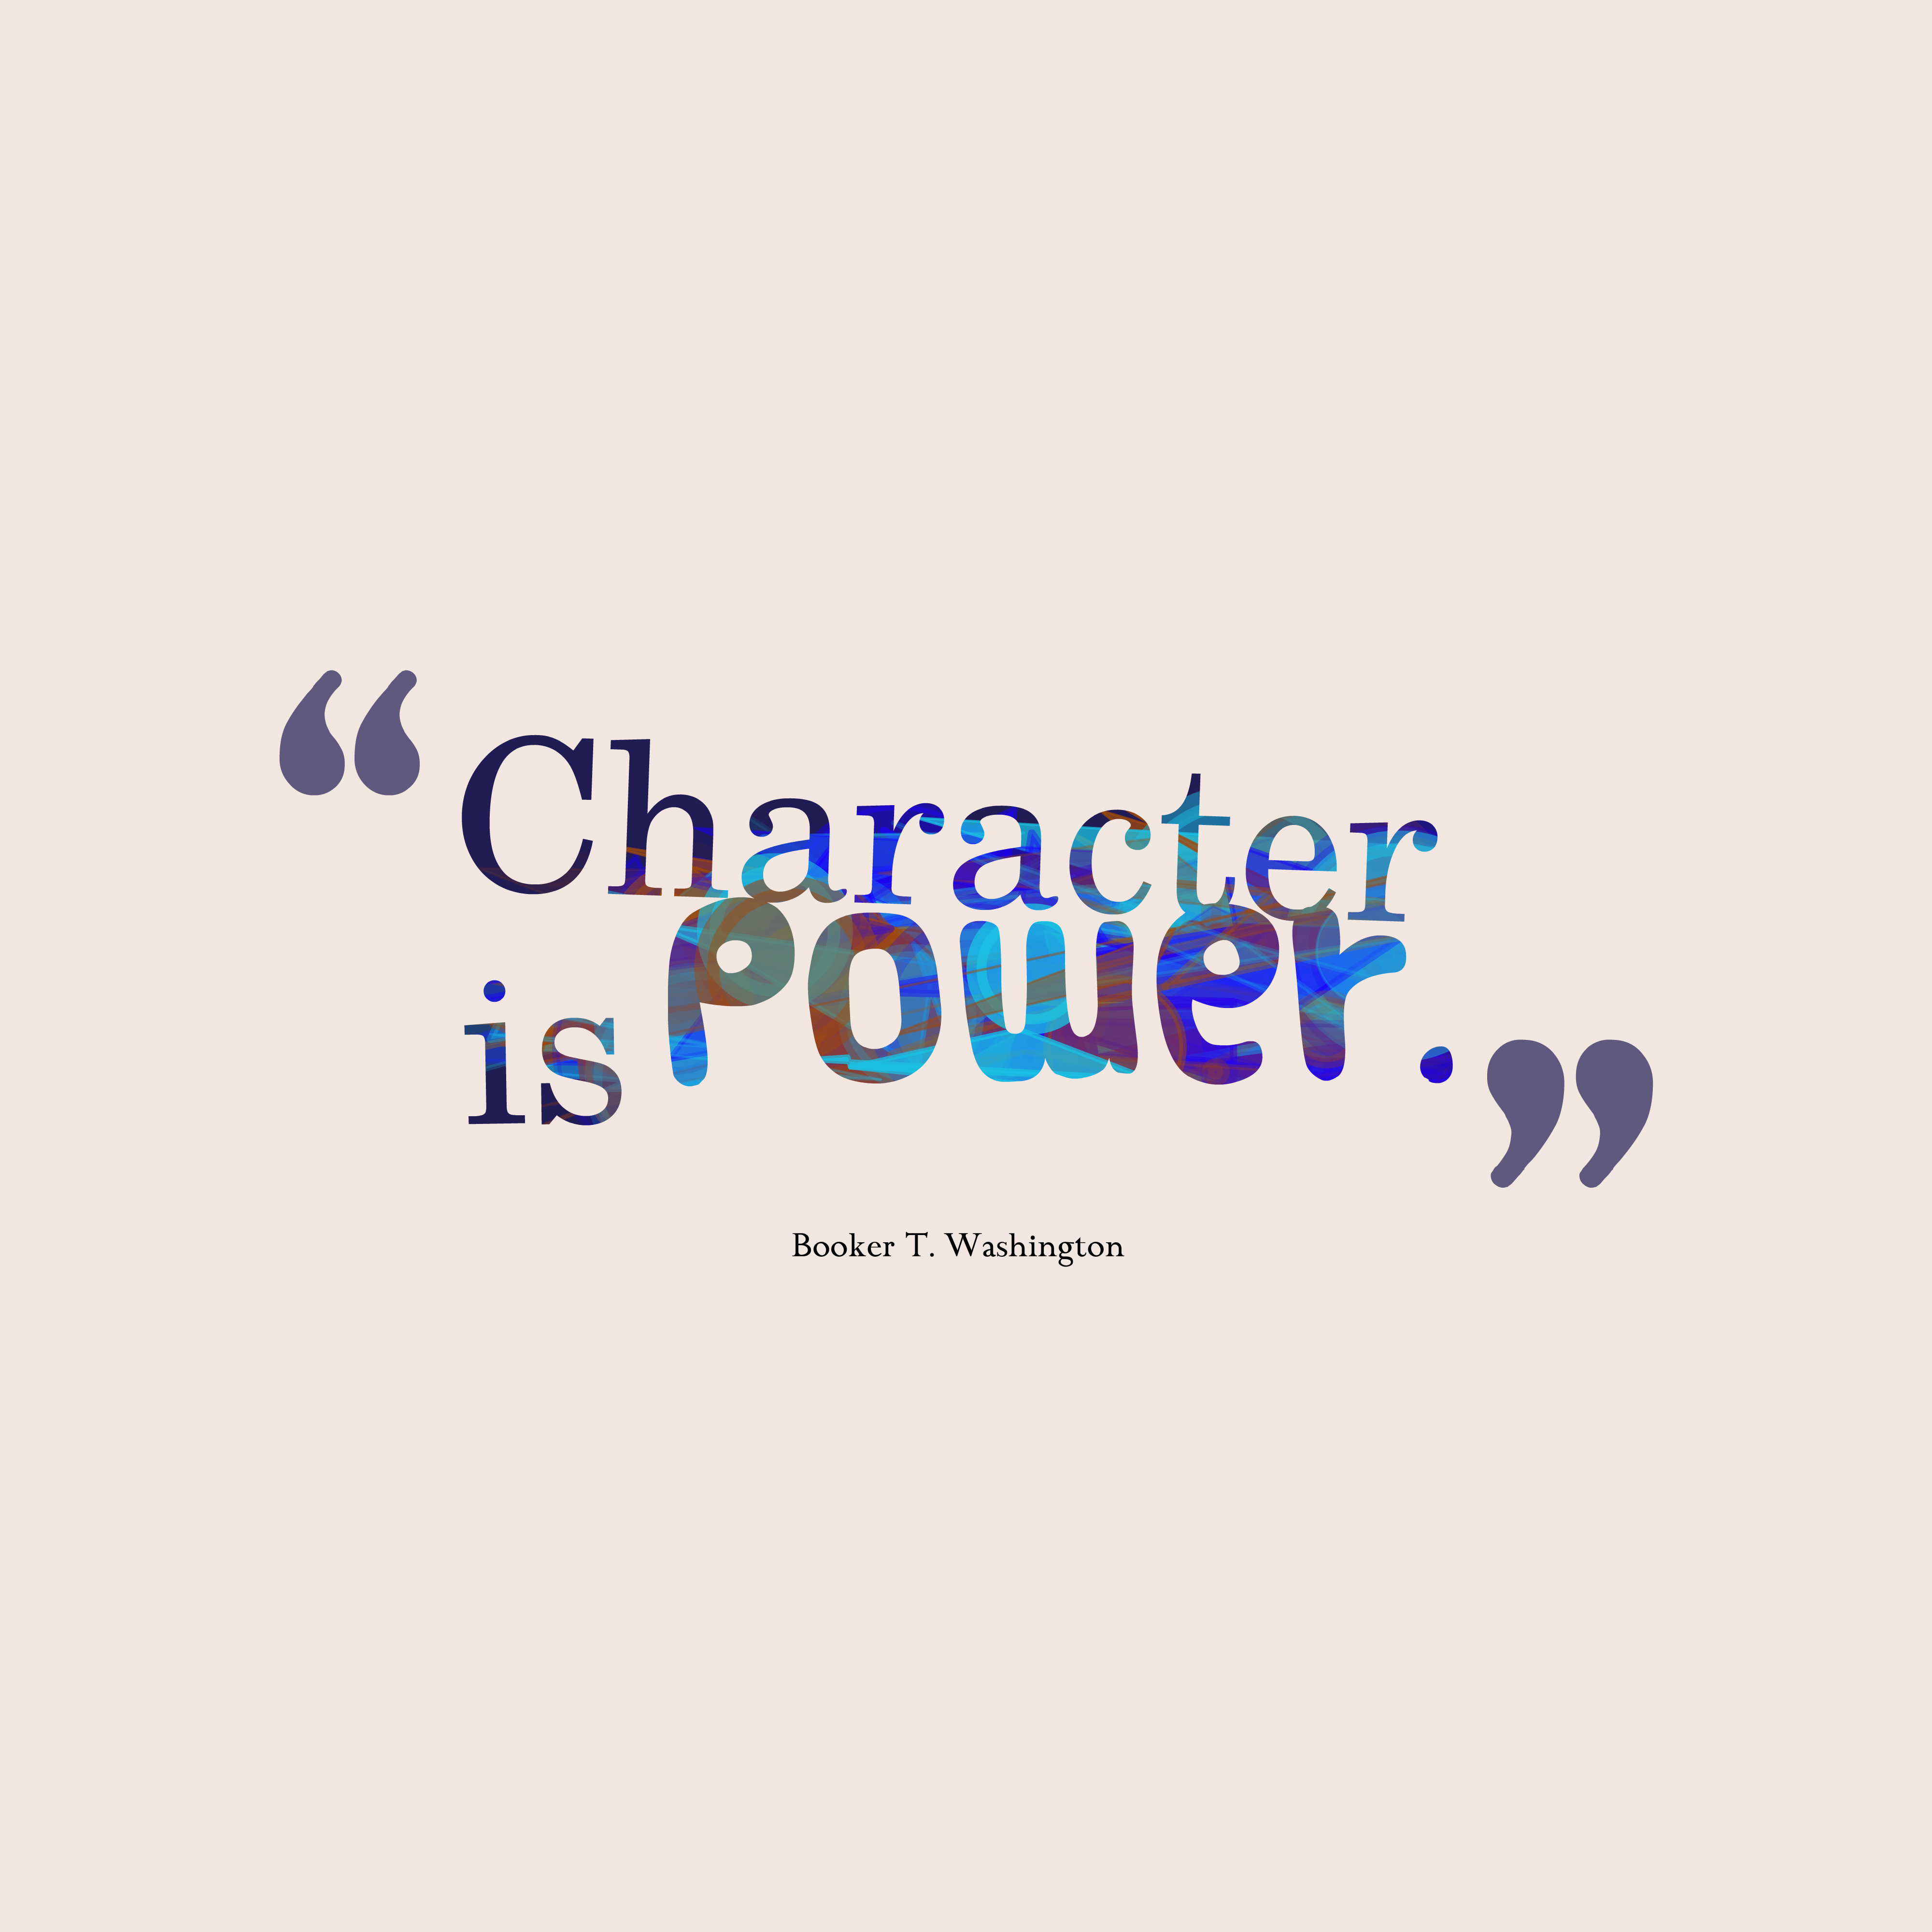 Quotes On Power 65 Best Power Quotes And Sayings